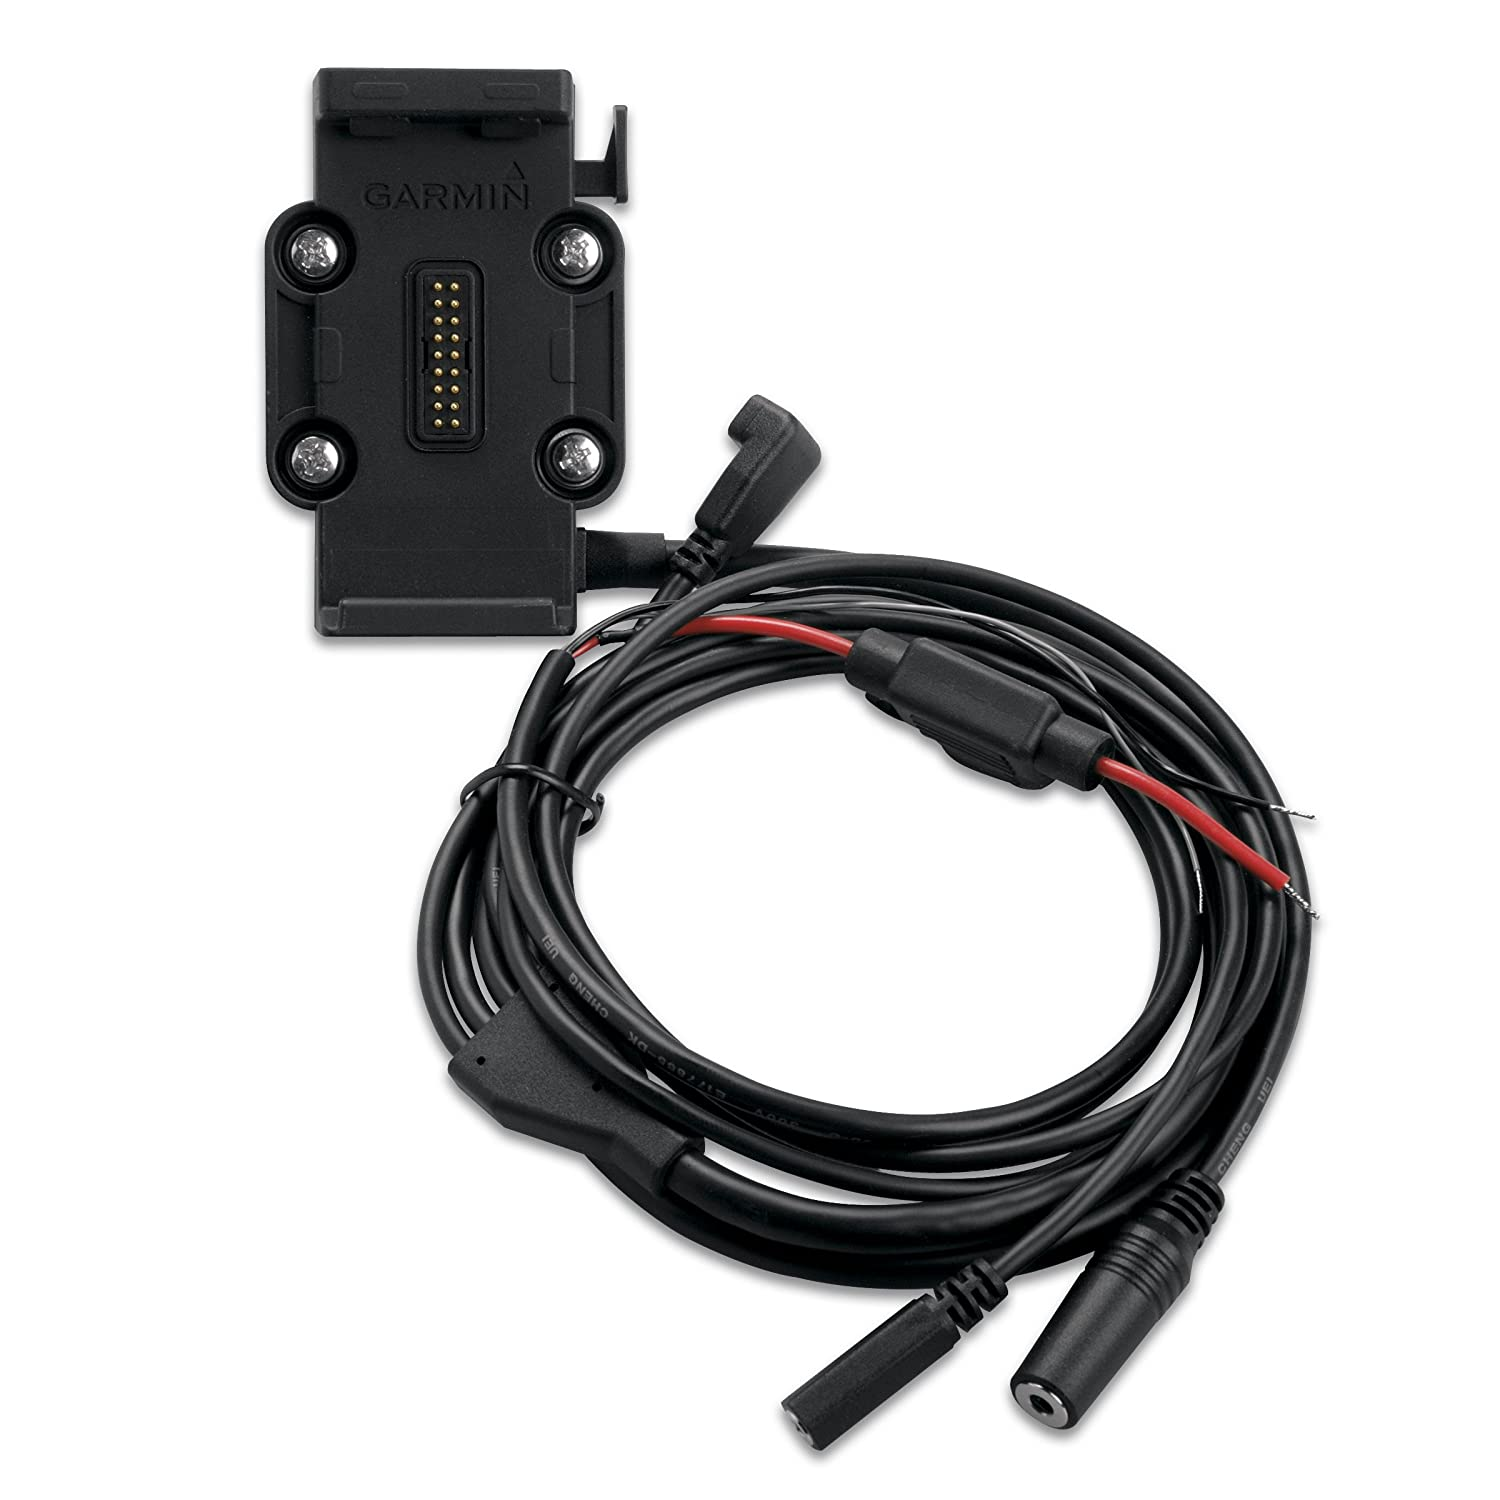 Amazon.com: Garmin 010-11270-03 Mount With Integrated Power Cable:  Electronics